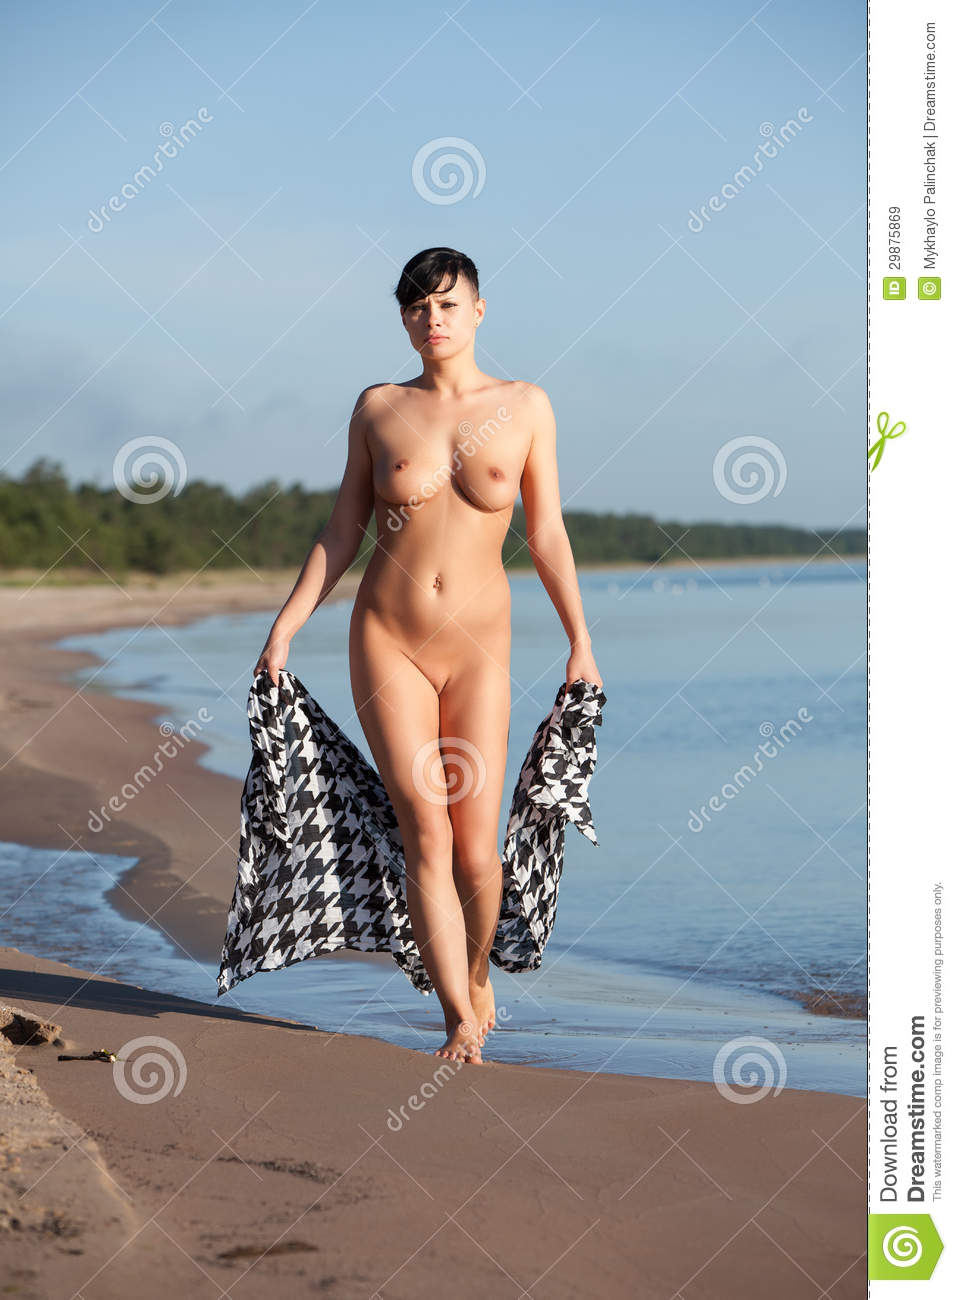 women naked shower beach